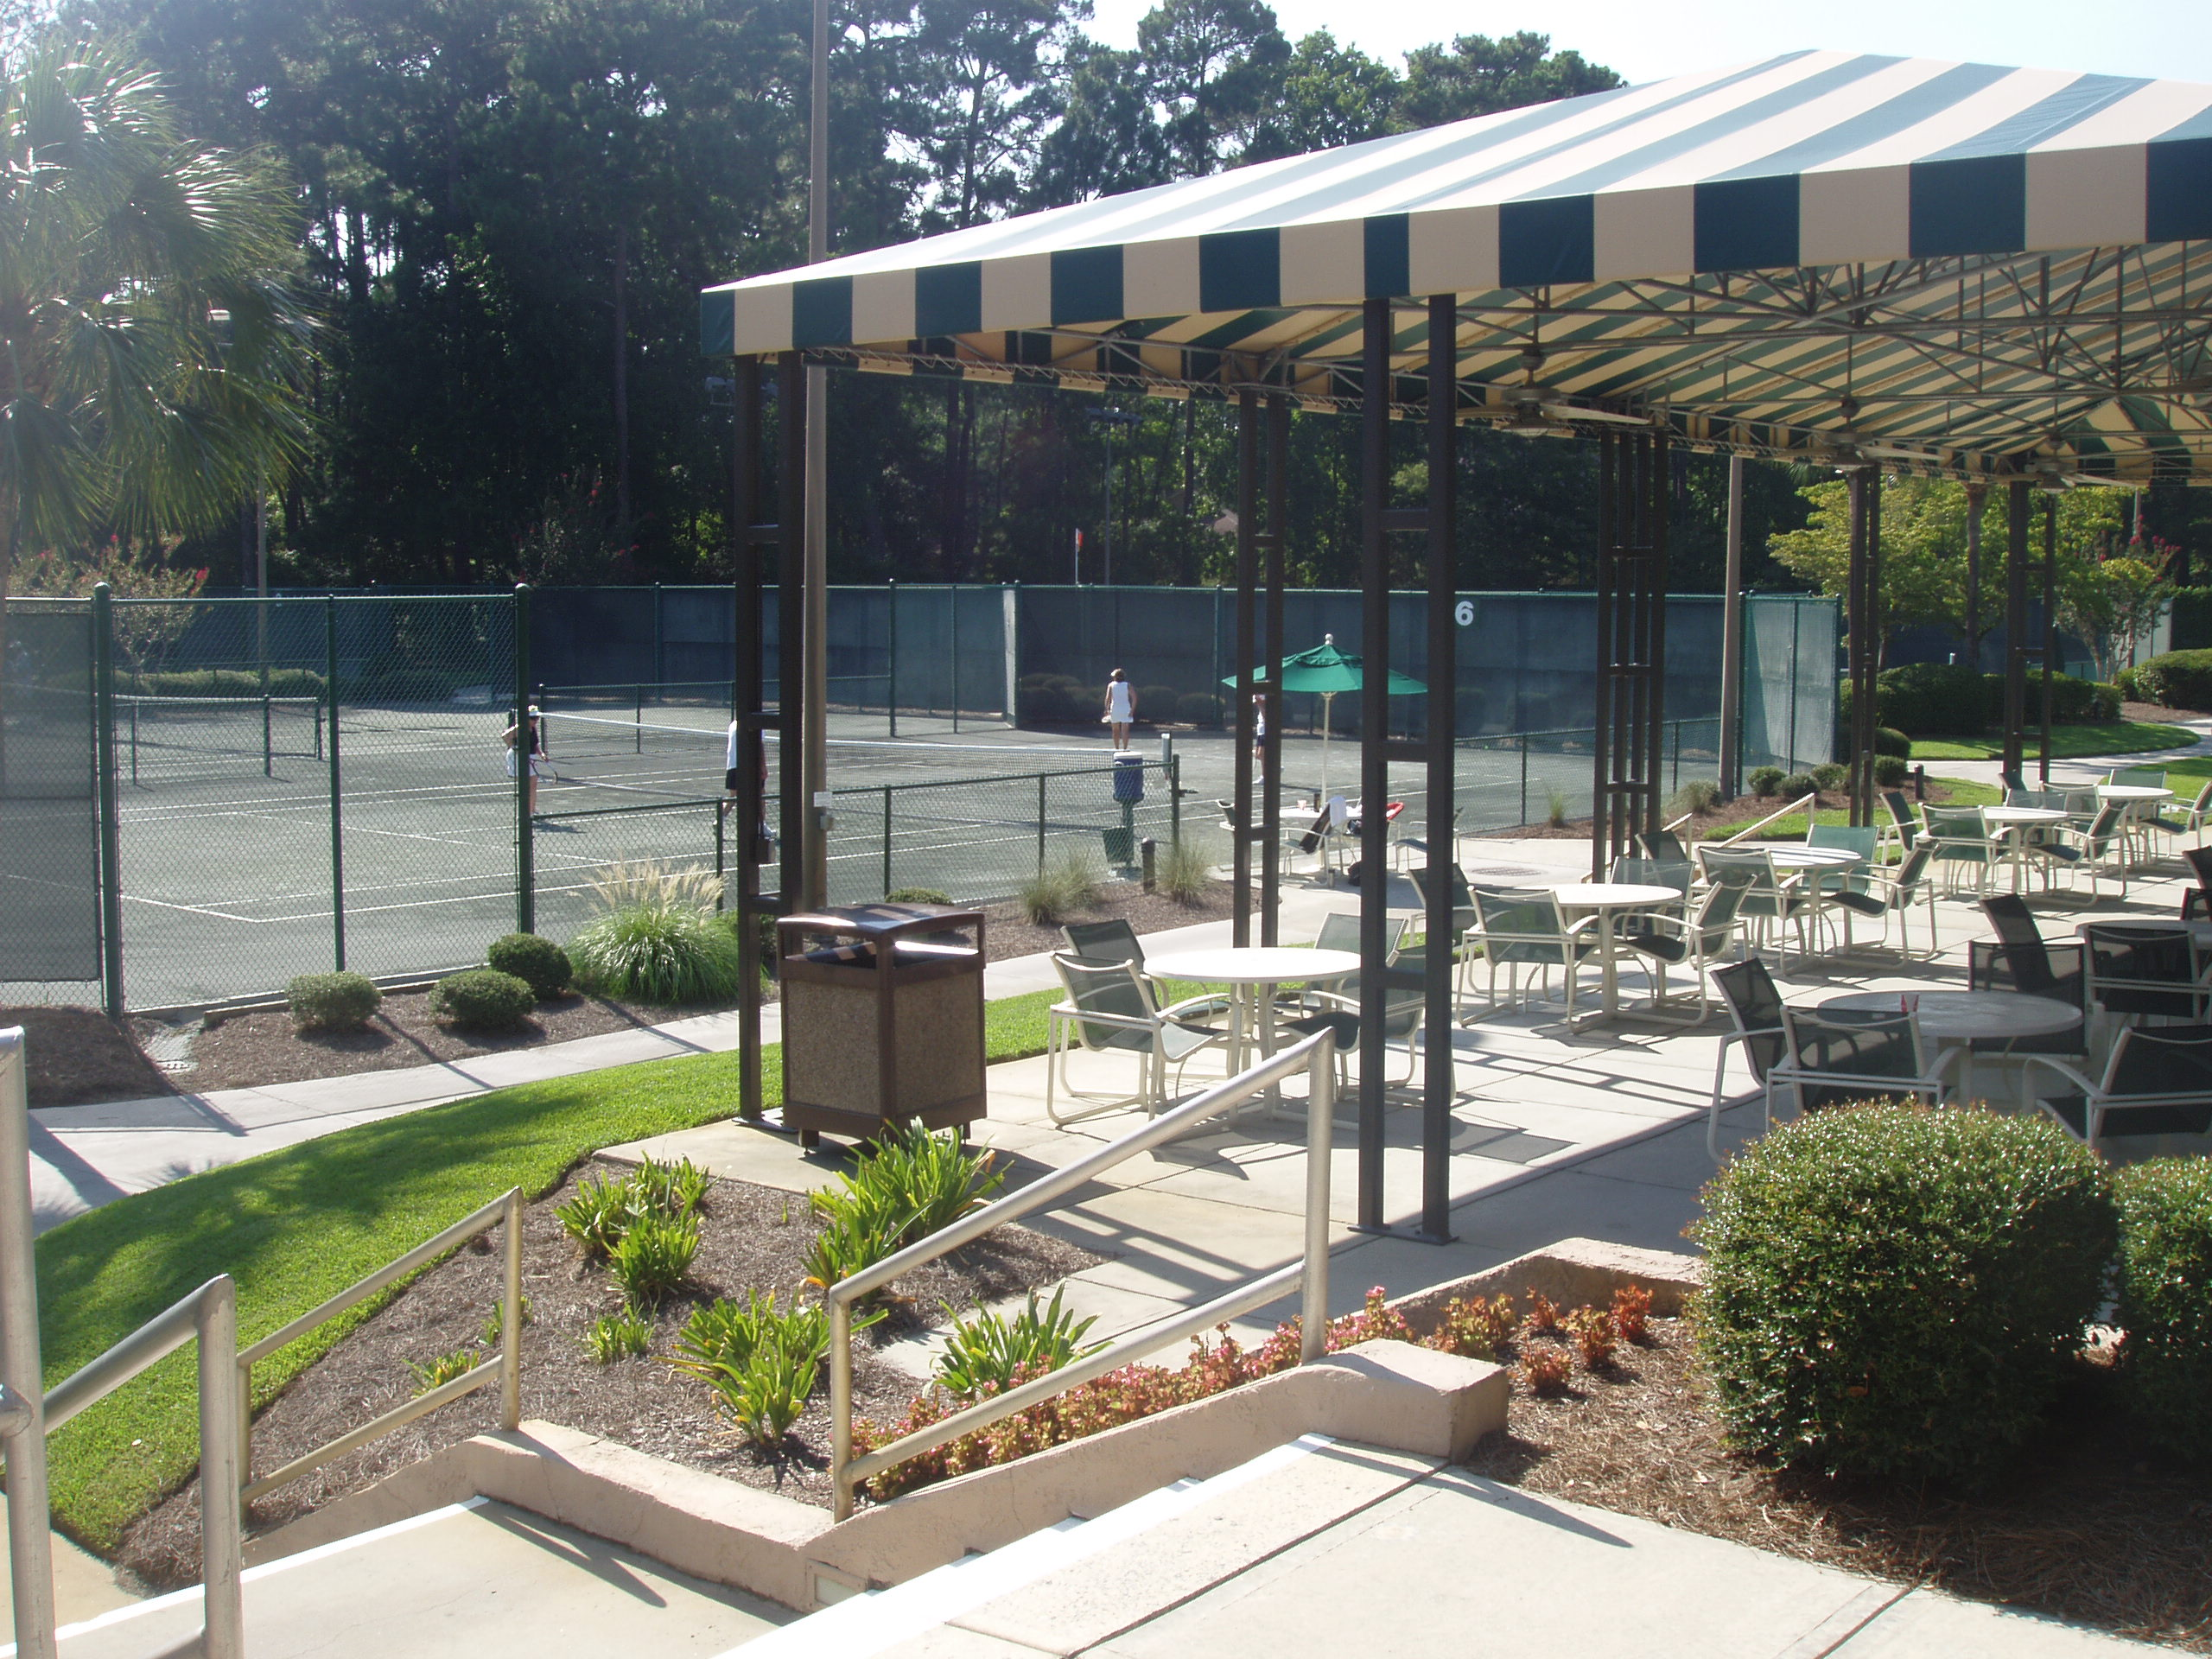 Recreational Patio & Tennis Courts